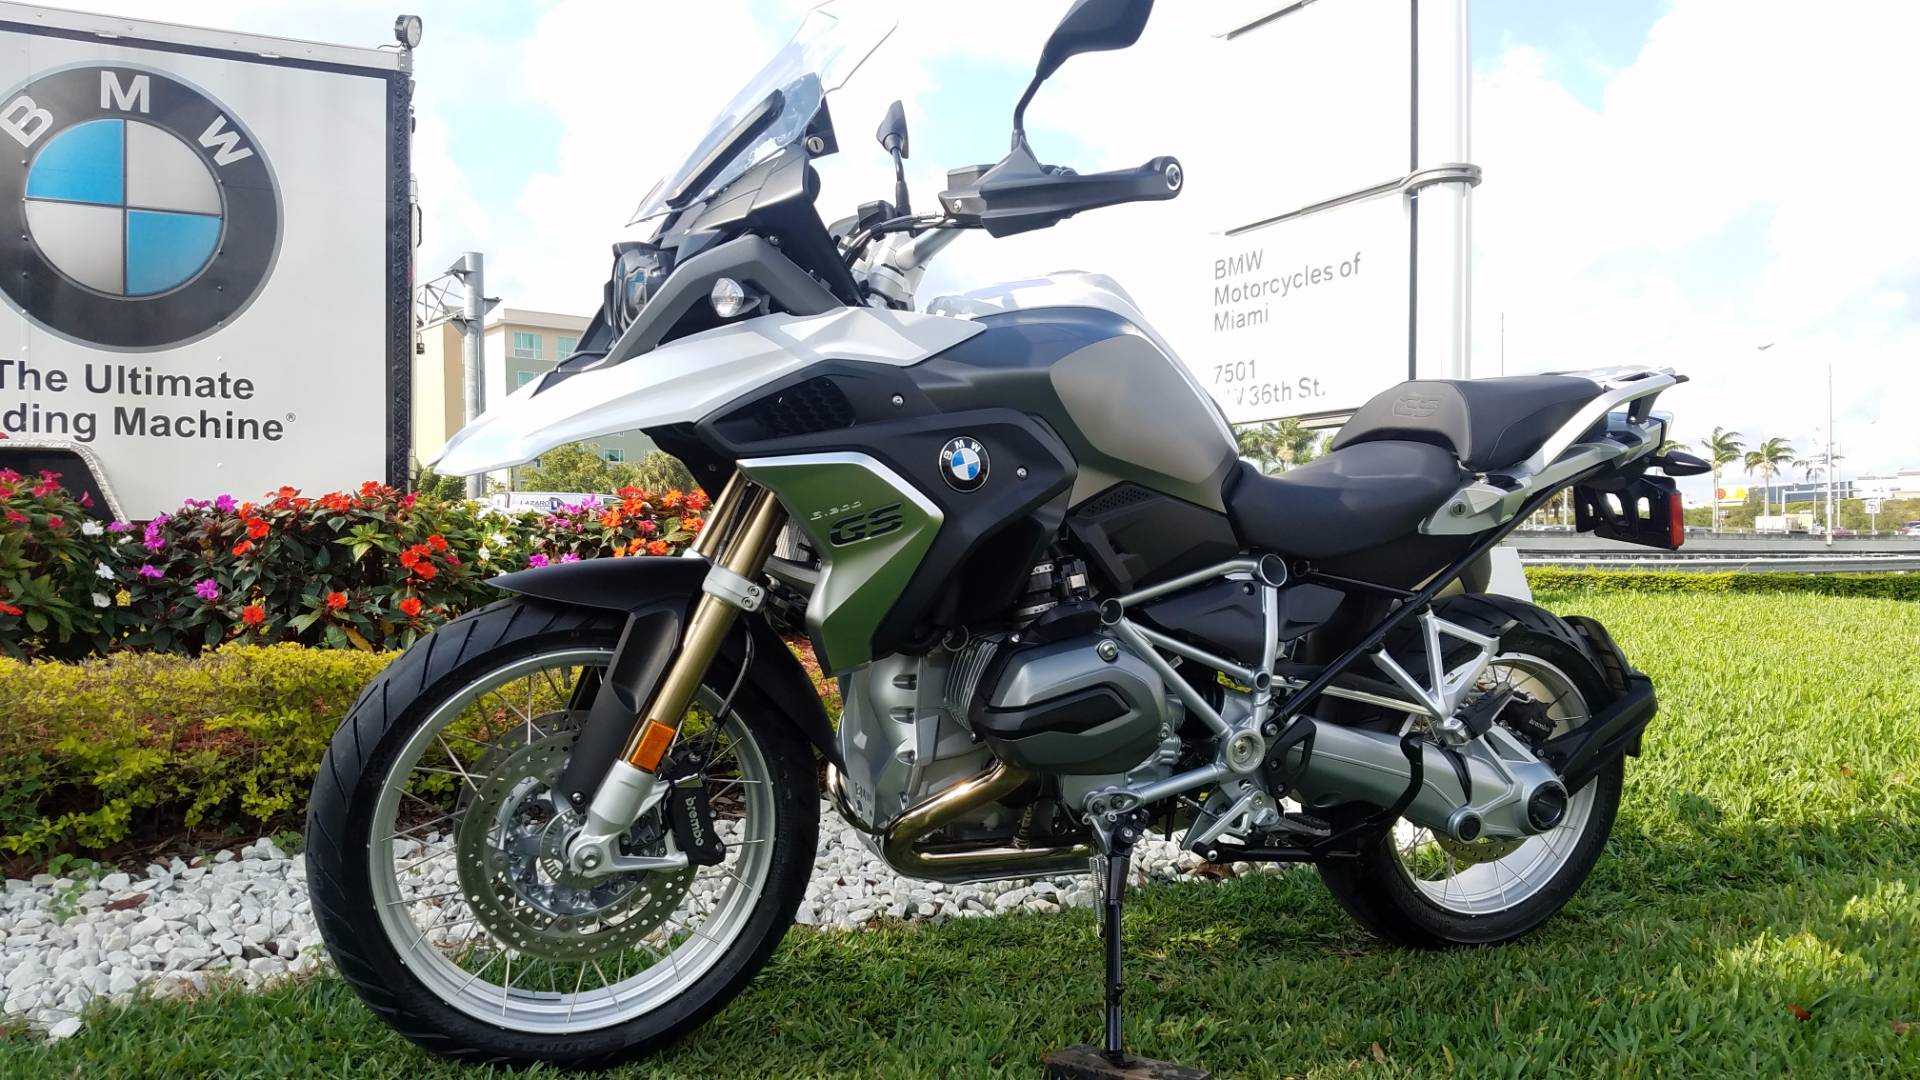 New 2016 BMW R 1200 GS For Sale, BMW R 1200 GS For Sale, BMW Motorcycle GS, new BMW Motorcycle GS